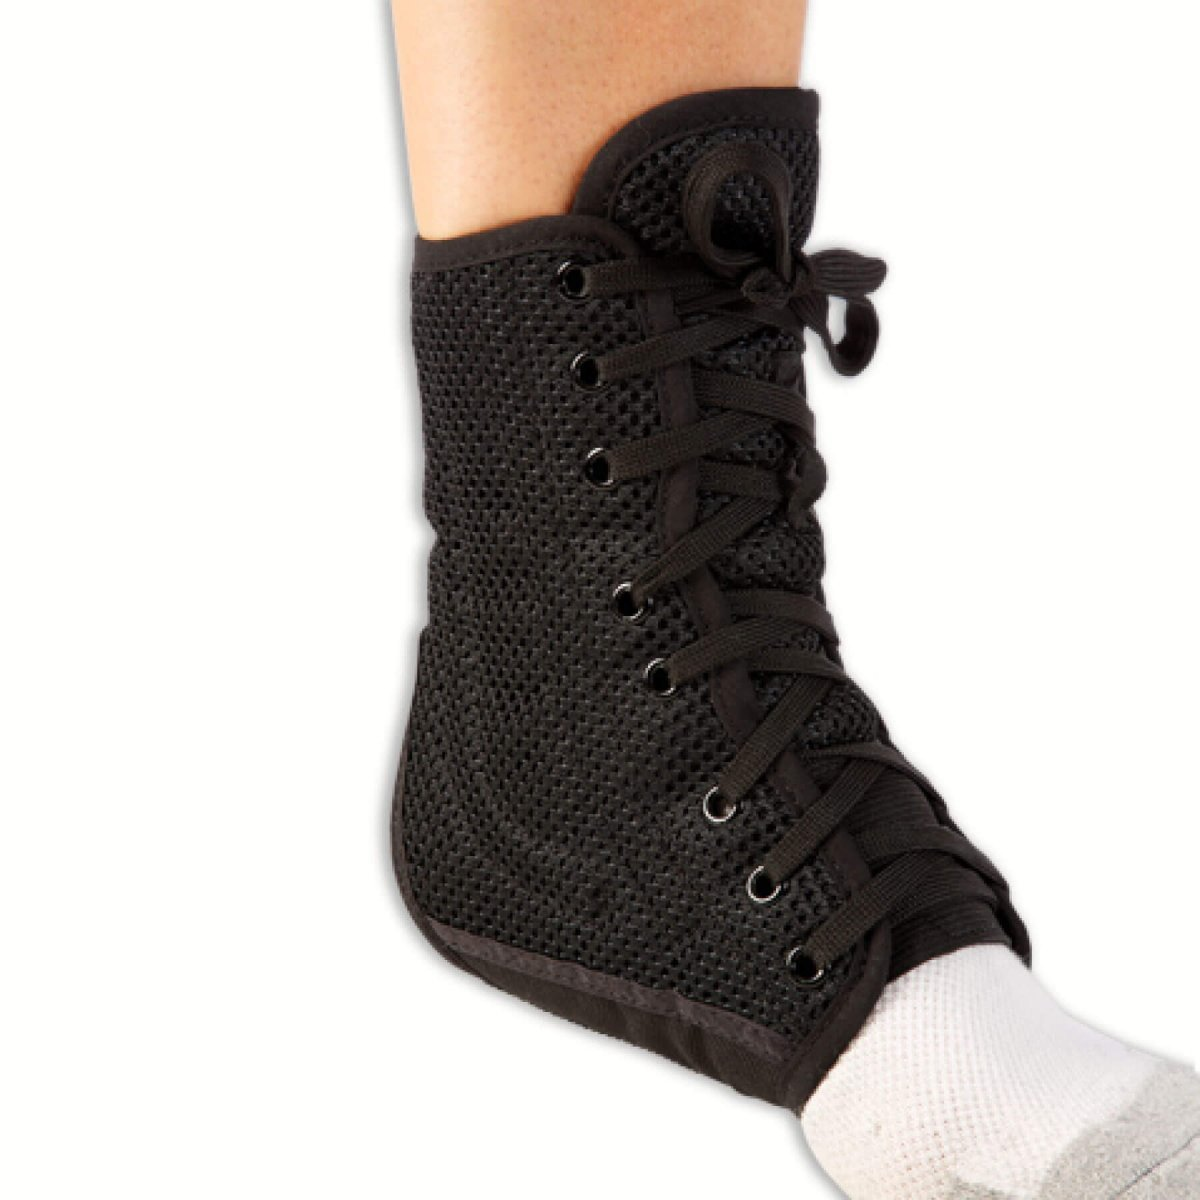 Laced Ankle Support